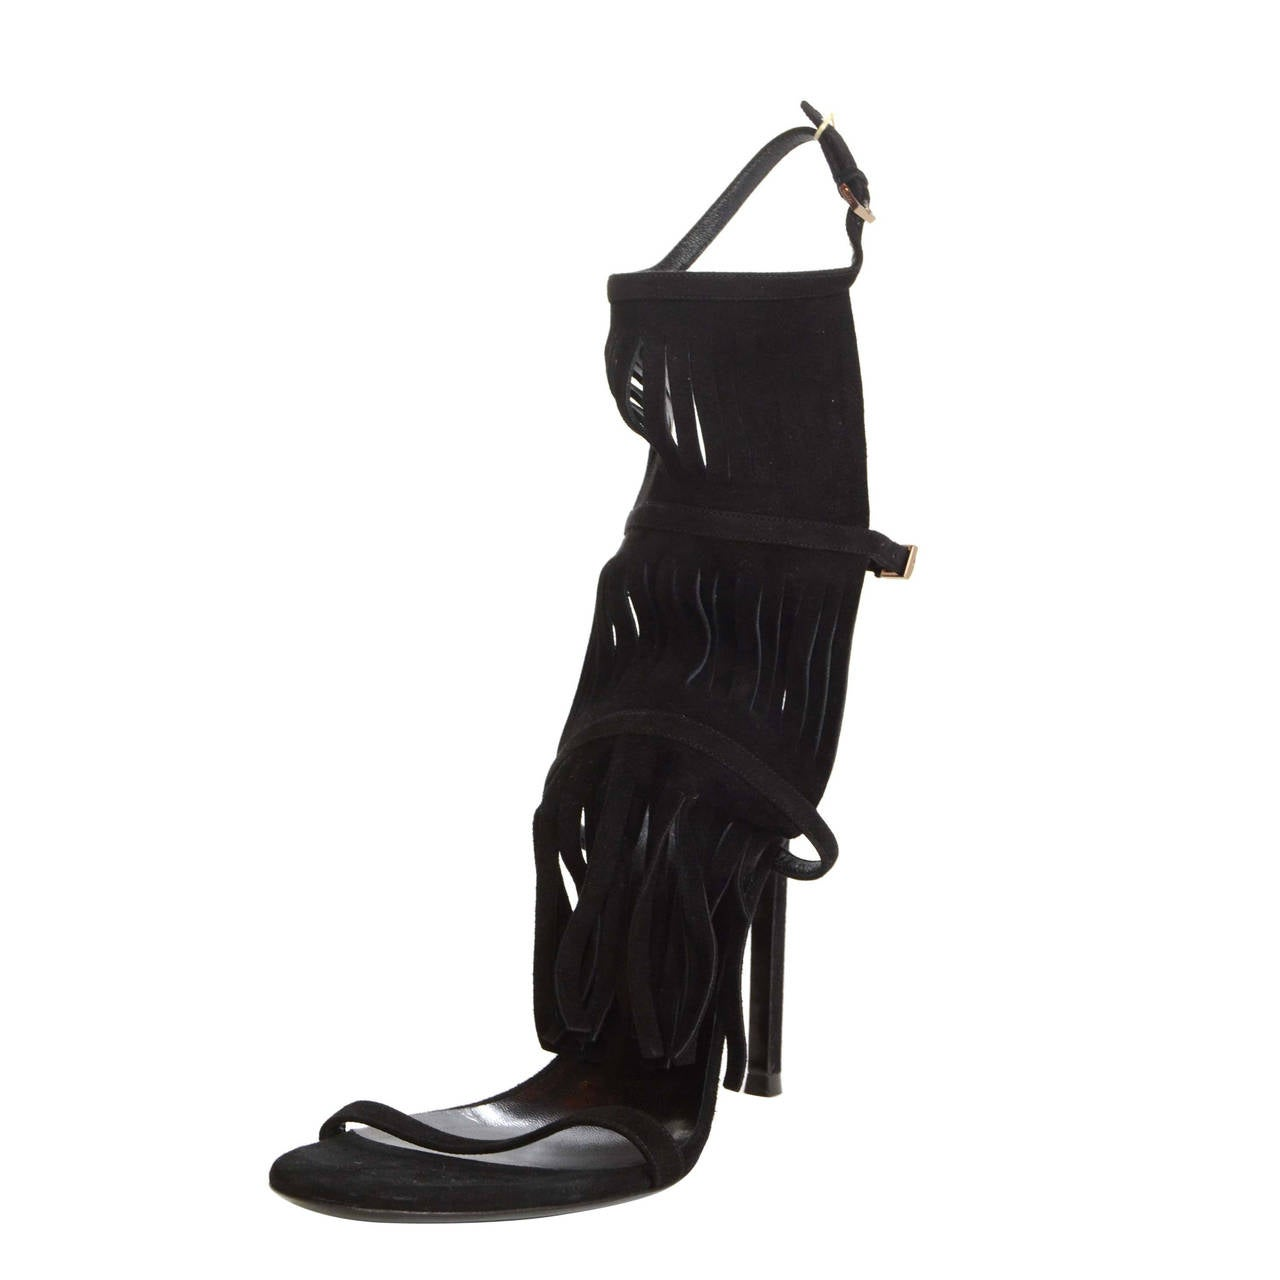 """Gucci NEW Black Suede """"Becky"""" Fringe Strappy Sandals sz 39.5 rt. $650 1"""